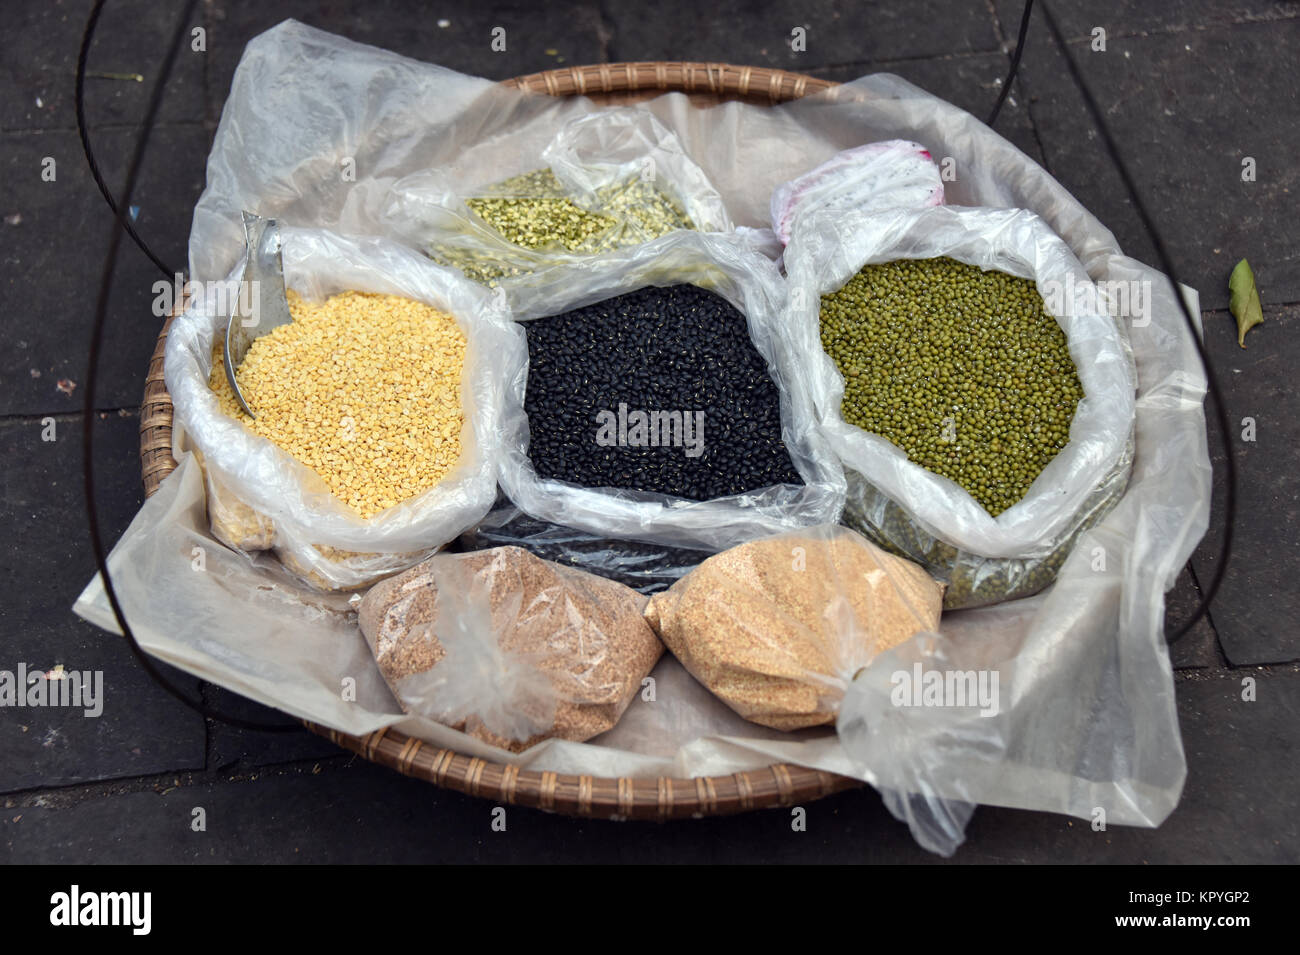 Seeds and Spices - Stock Image